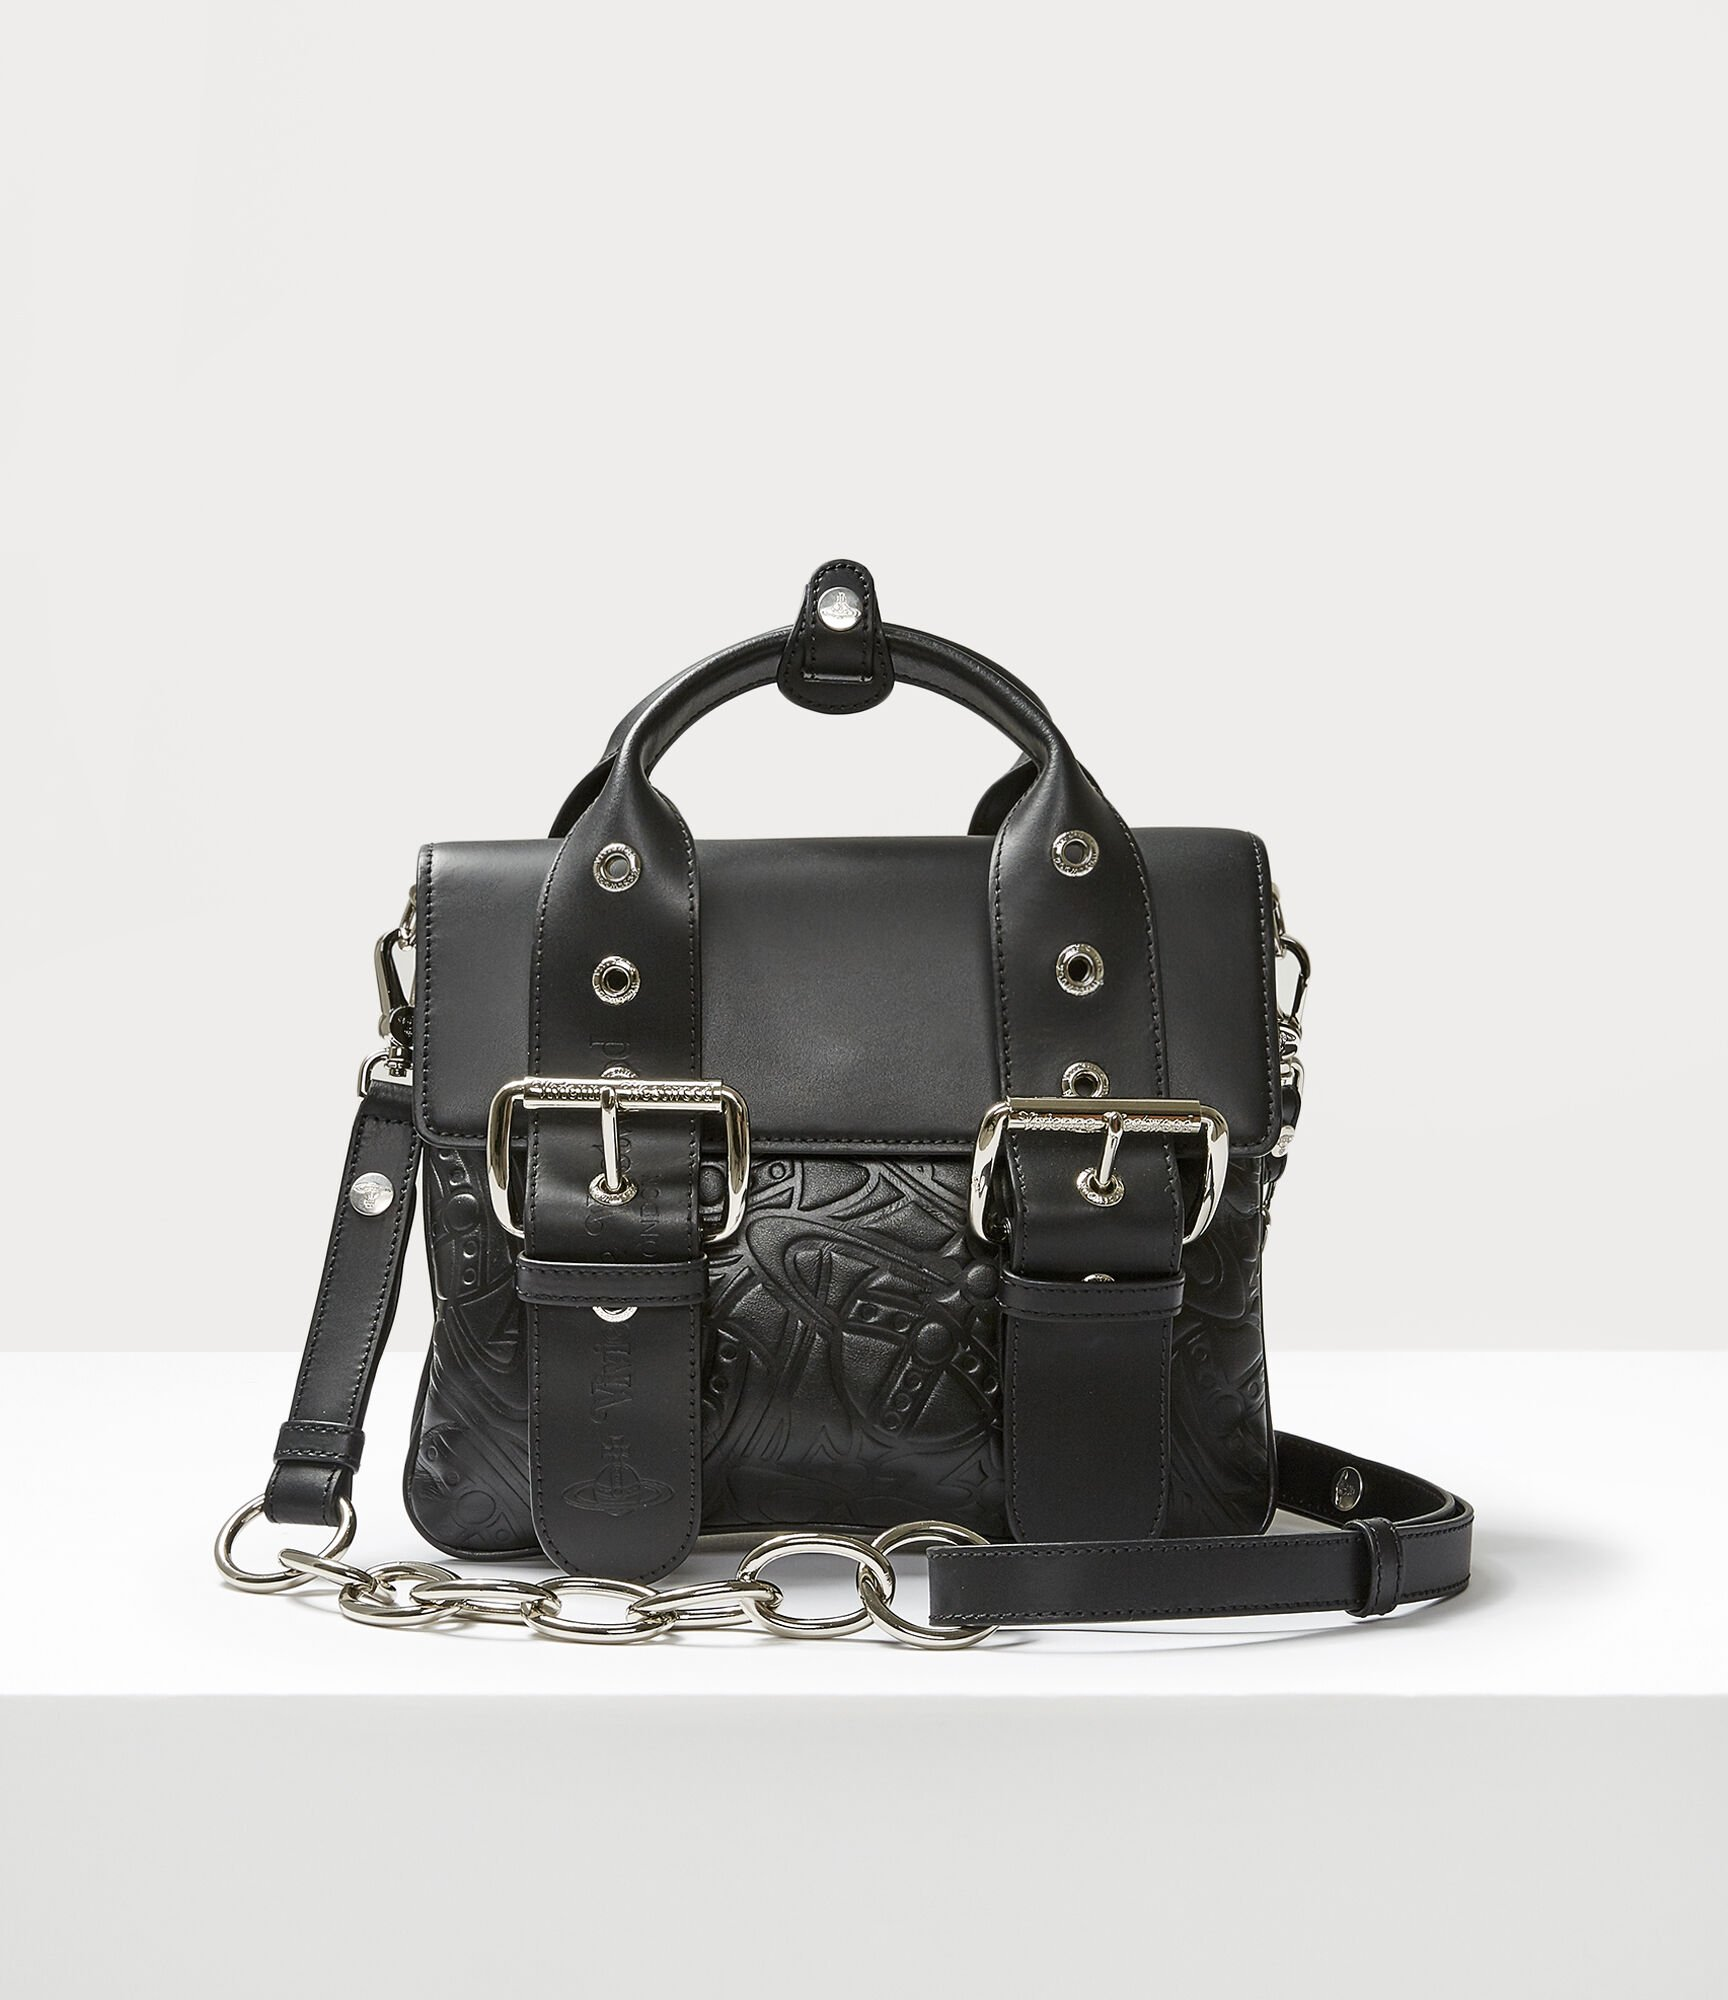 Vivienne Westwood Alexa Medium Handbag Black